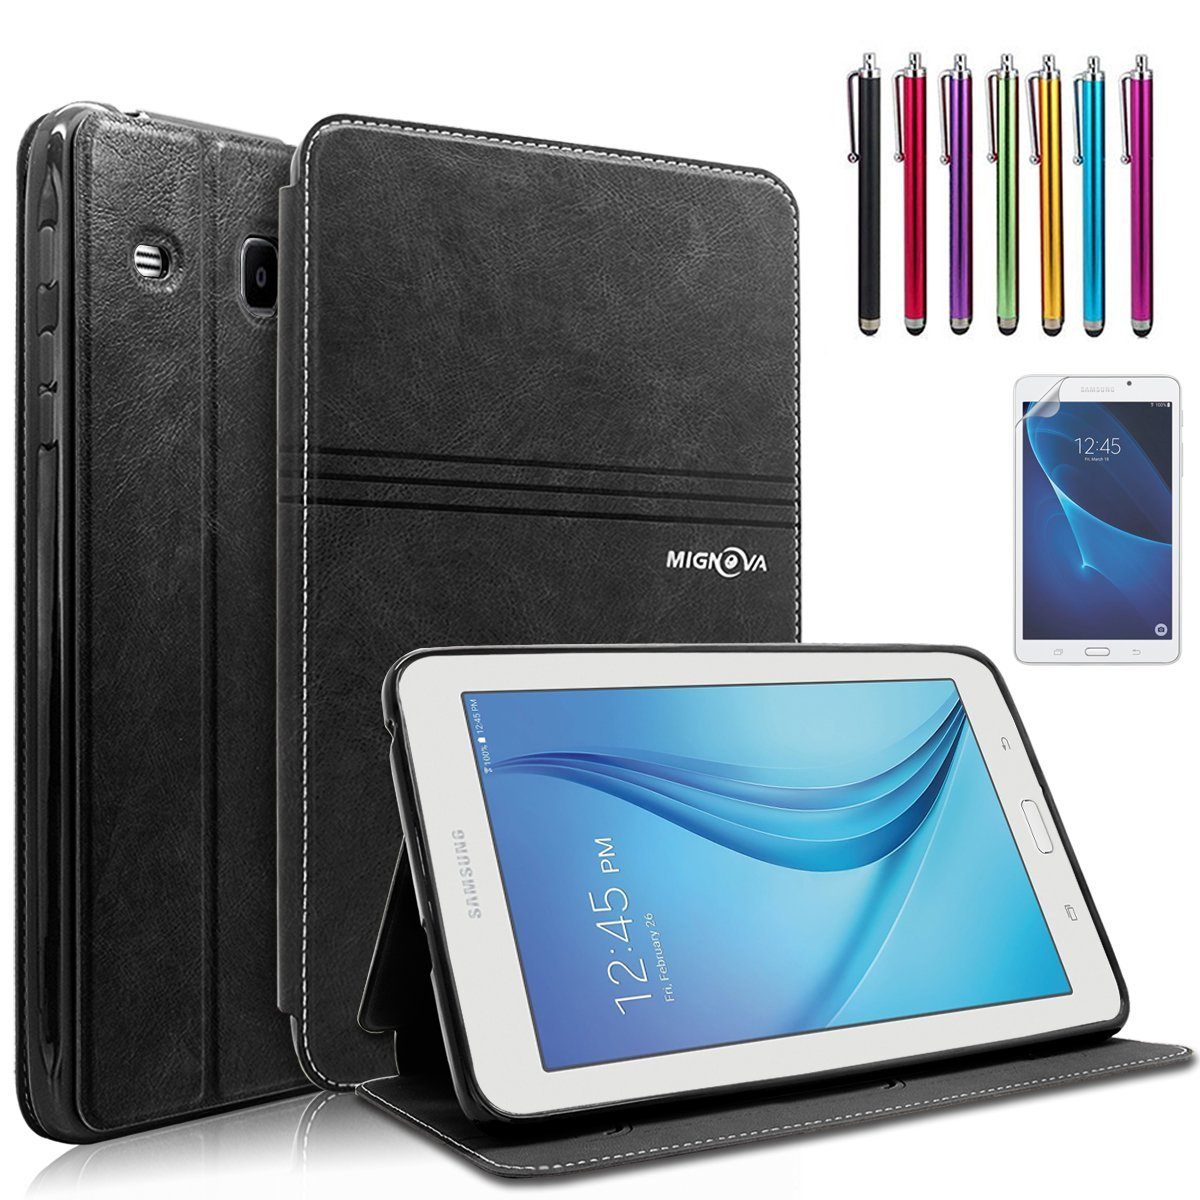 Mignova Galaxy Tab A 7.0 Folio Case - Ultra Slim Lightweight with Kickstand Case Cover for Samsung Galaxy Tab A 7.0 7-inch Tablet 2016 Release (SM-T280 / SM-T285) (Black)